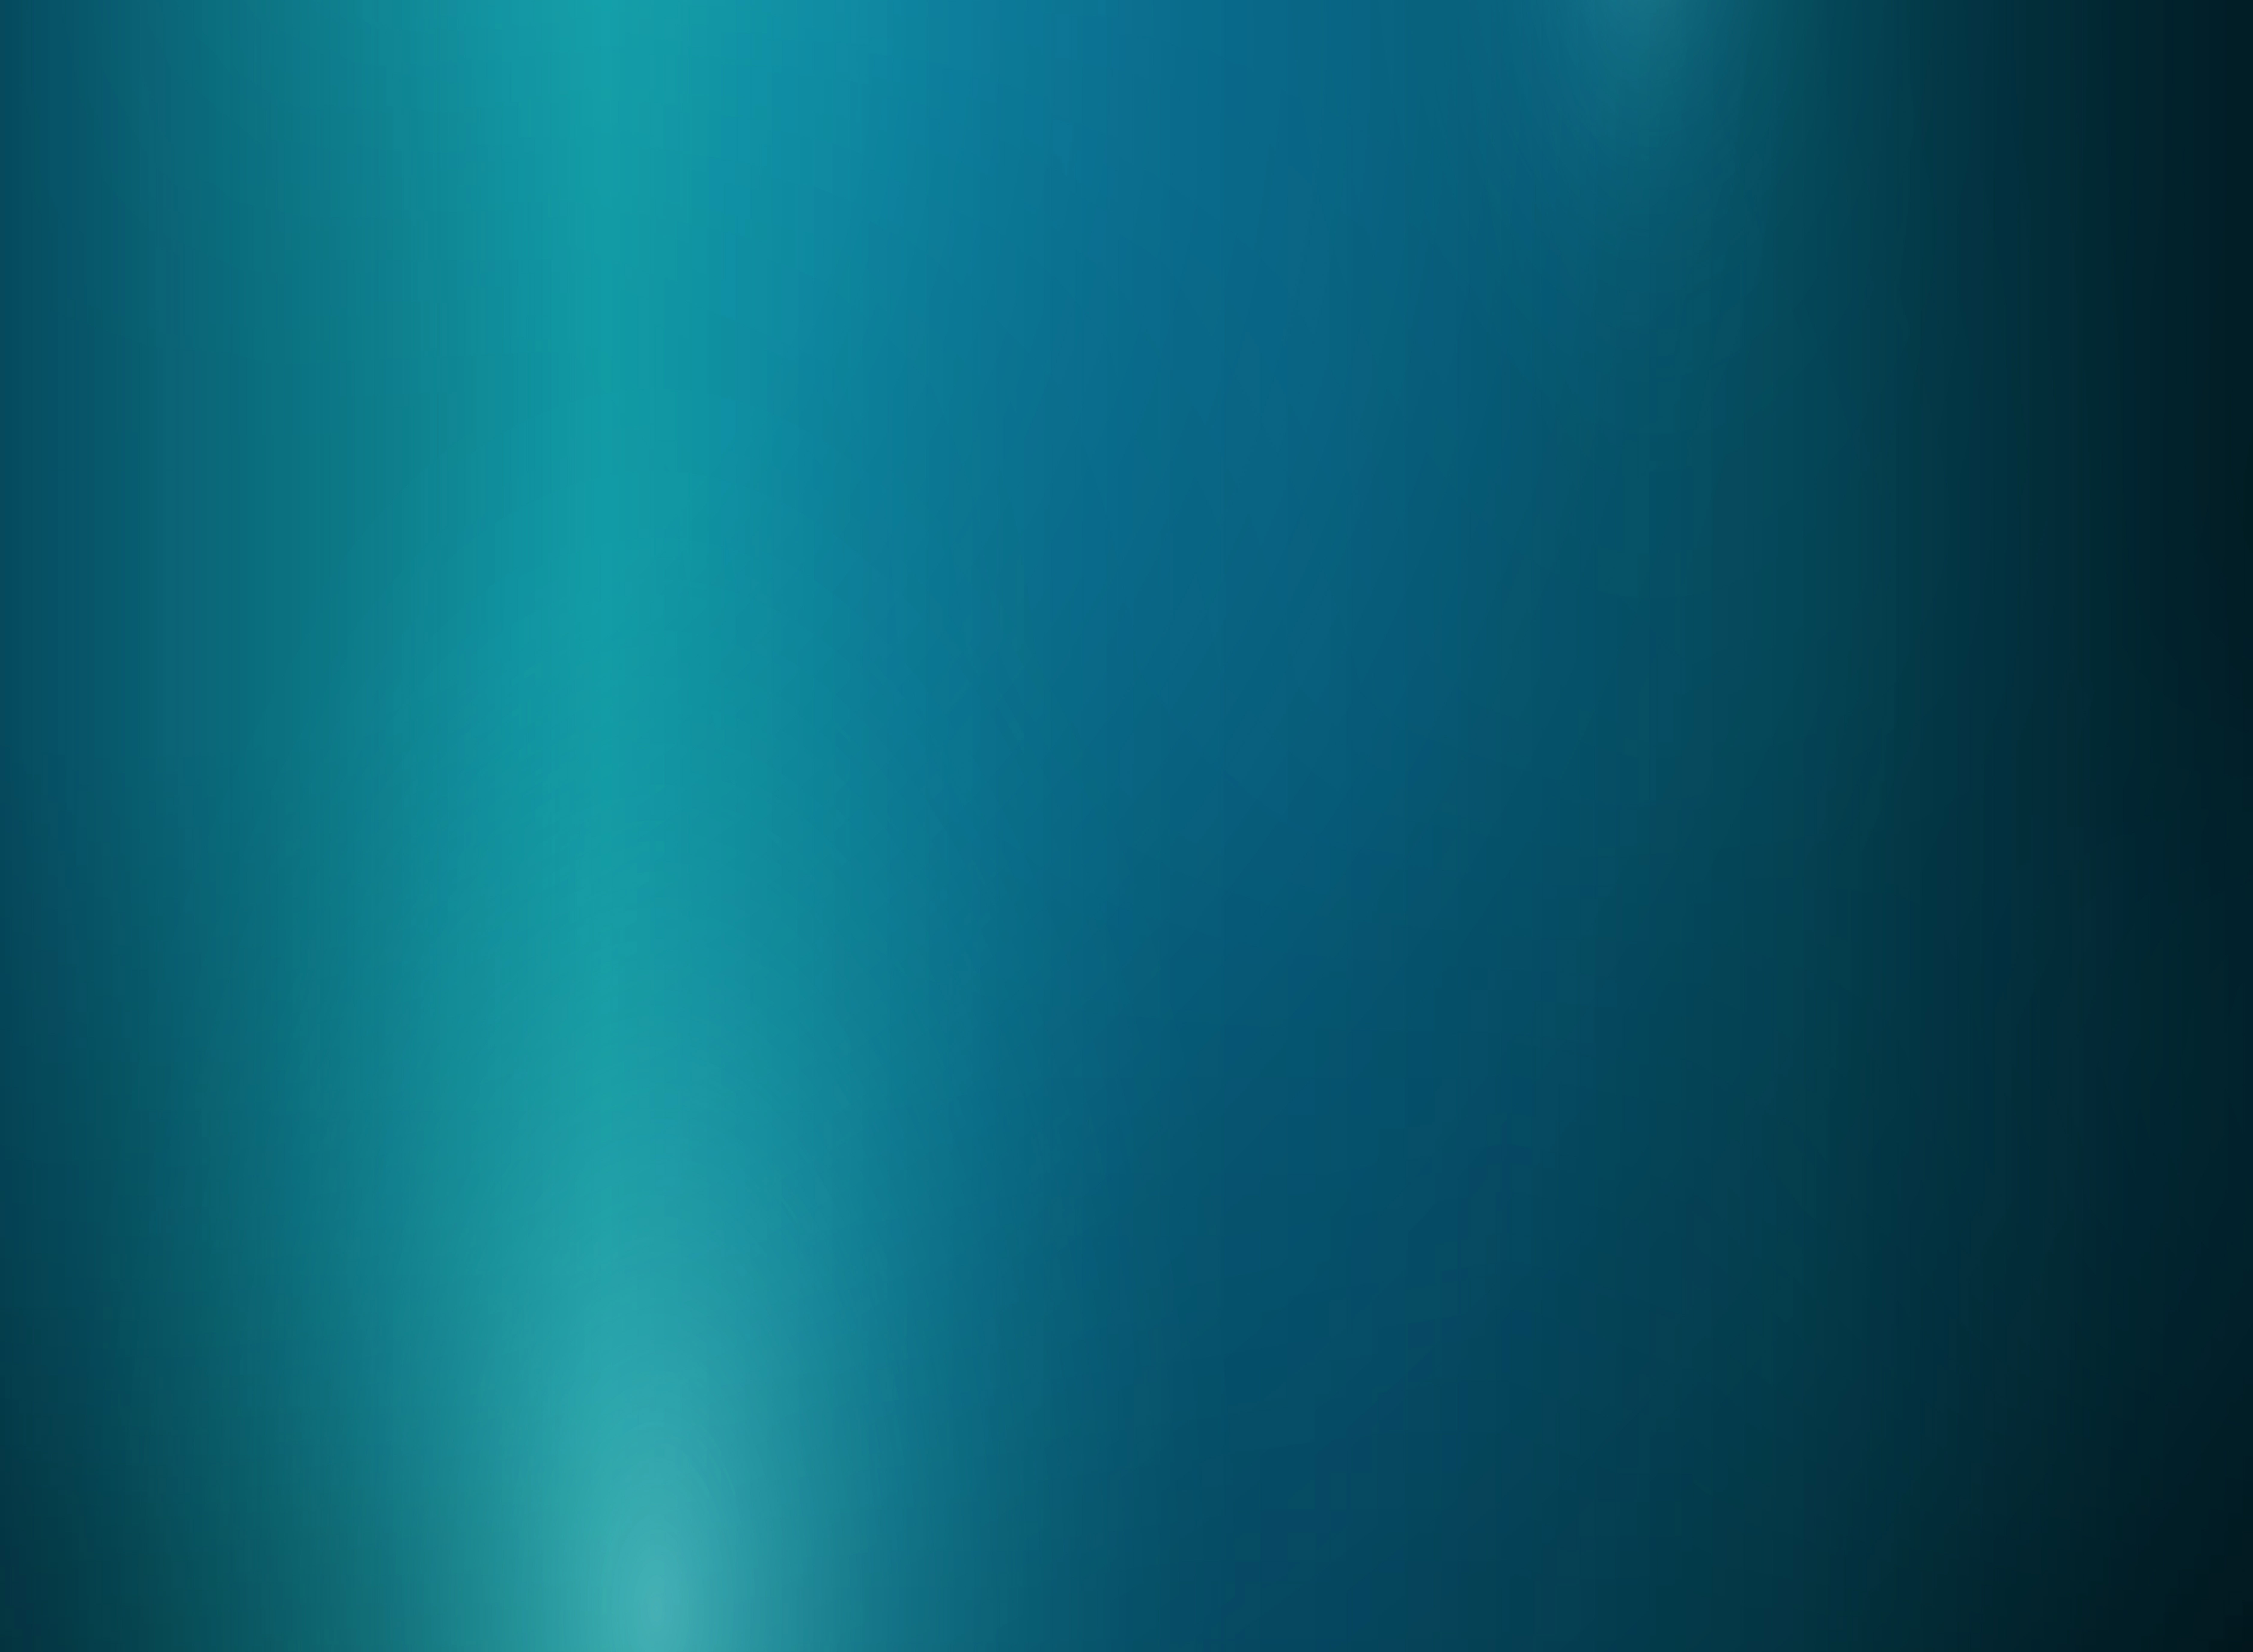 Abstract Blue Metallic Polished Glossy Color Background